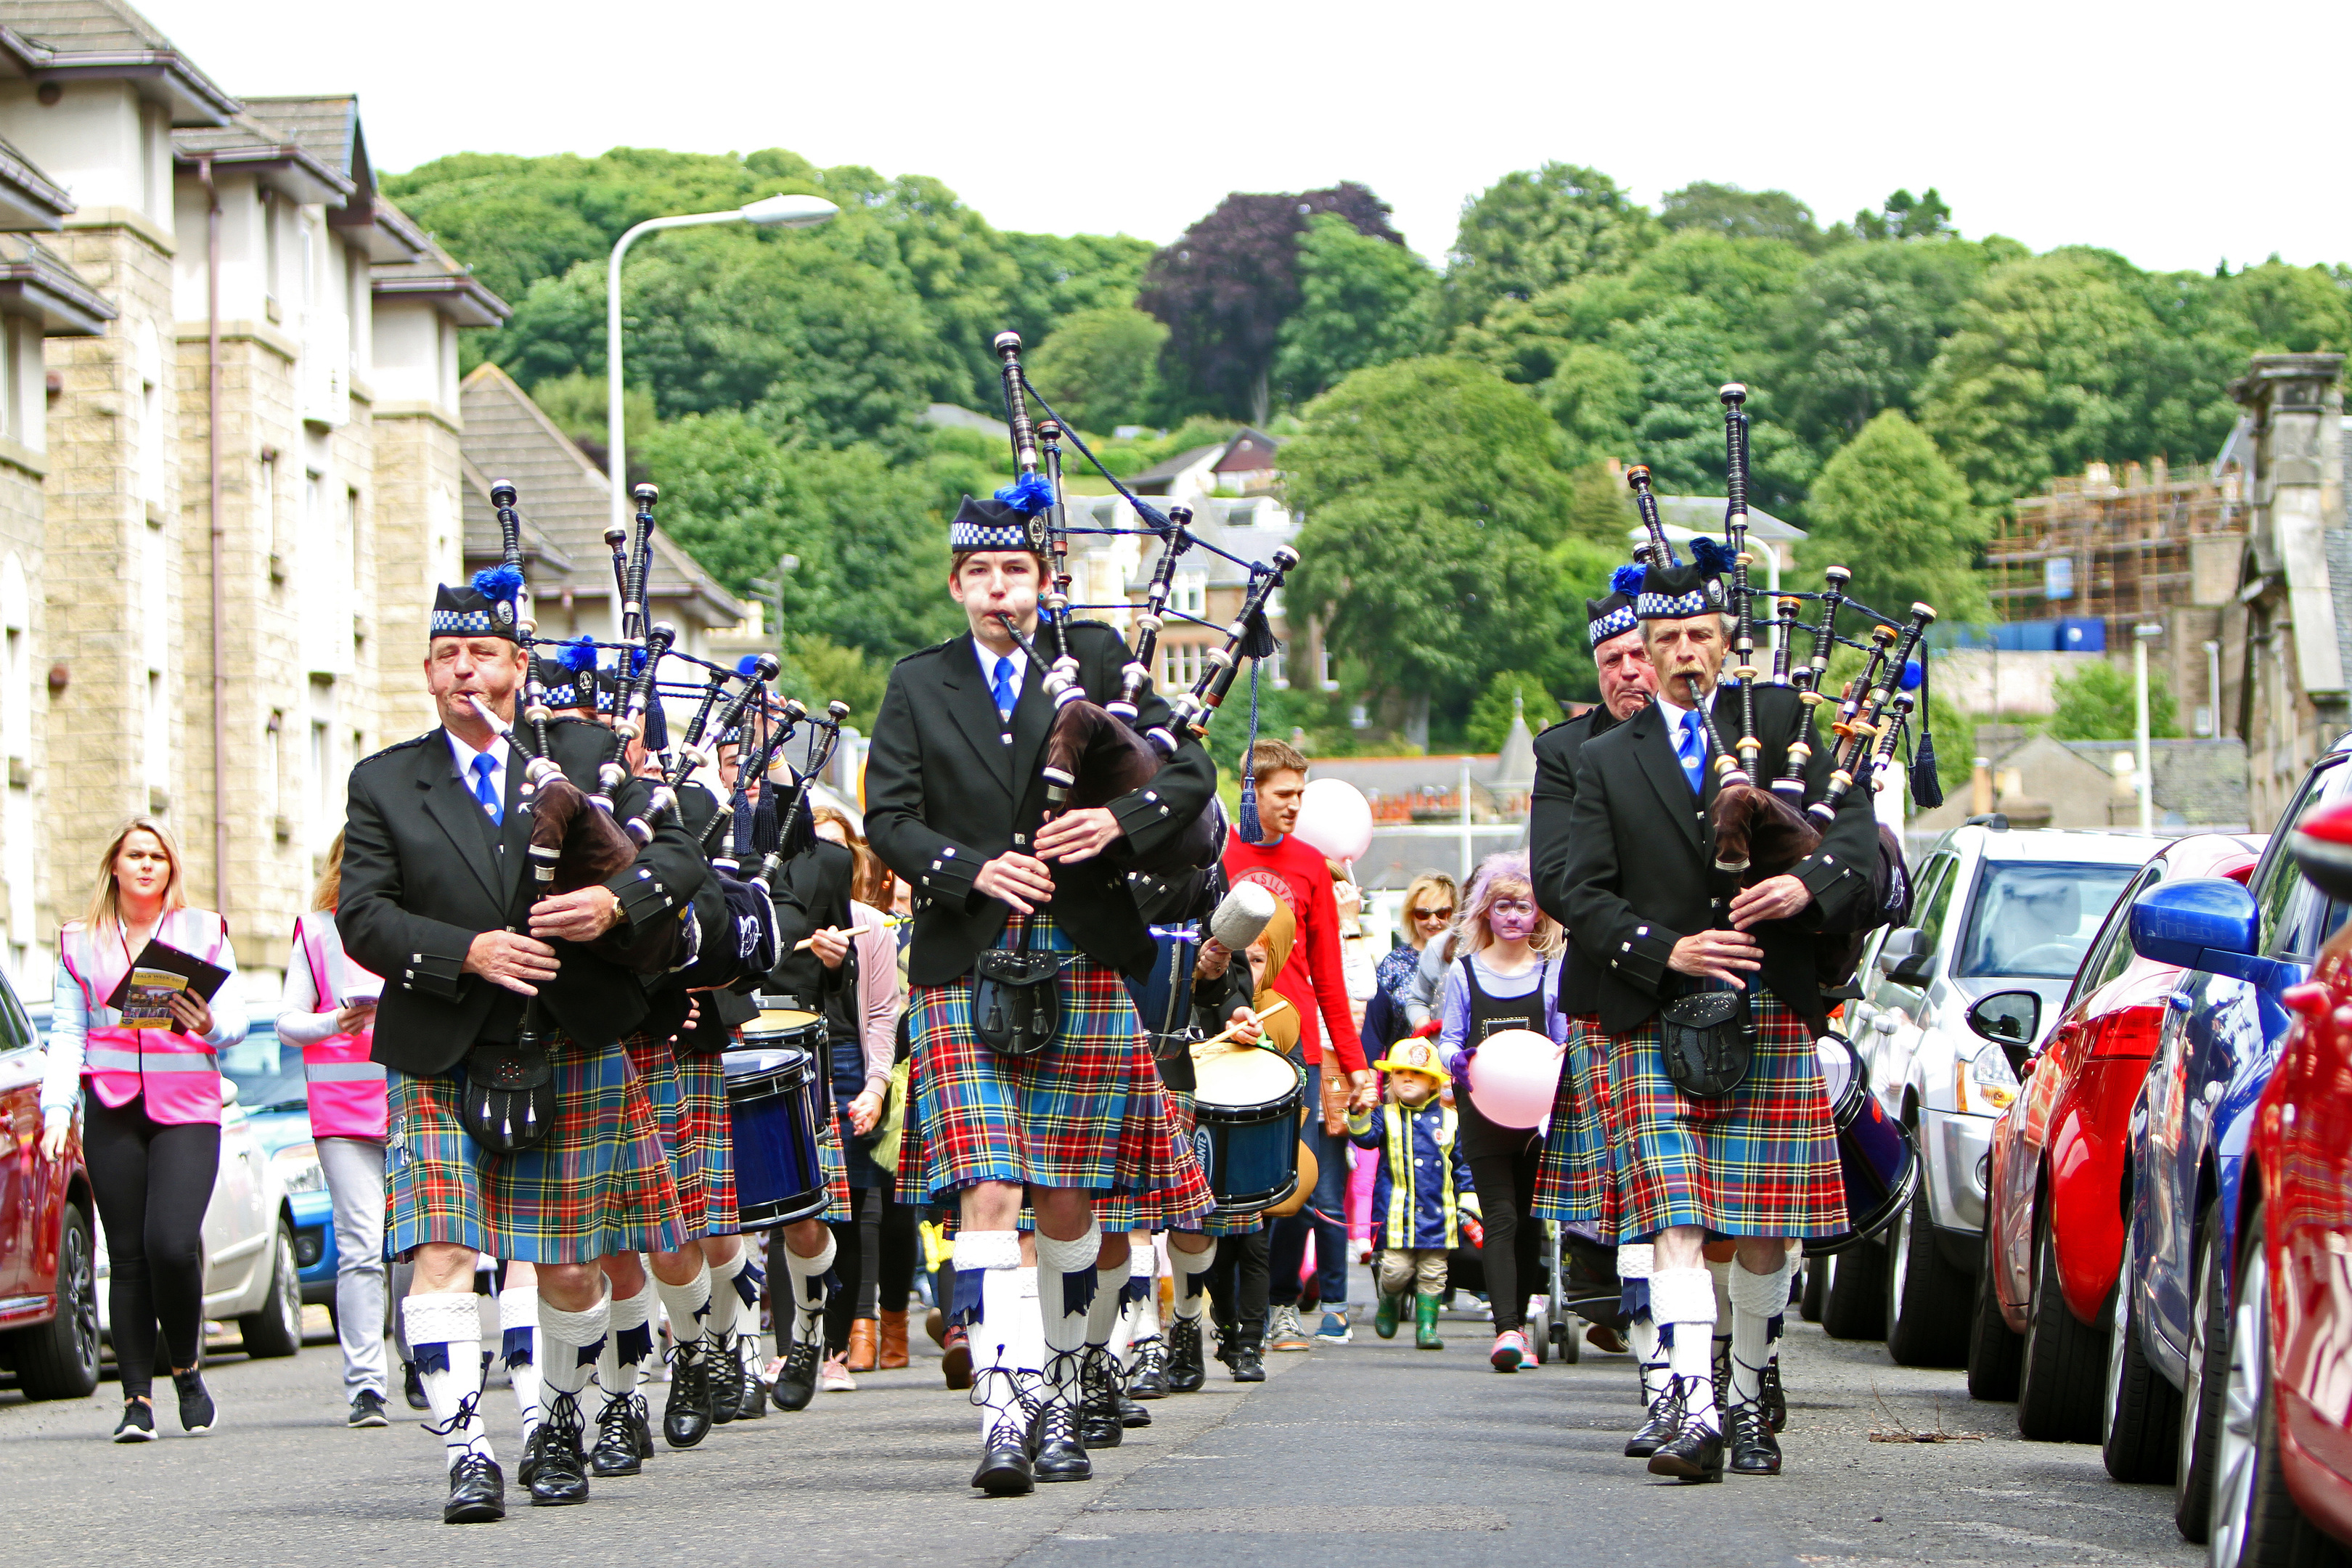 Mains of Fintry Pipe band opened the Gala Week fete,  leading a fancy dress parade and Royal British Legion bikers up to Castle Green.